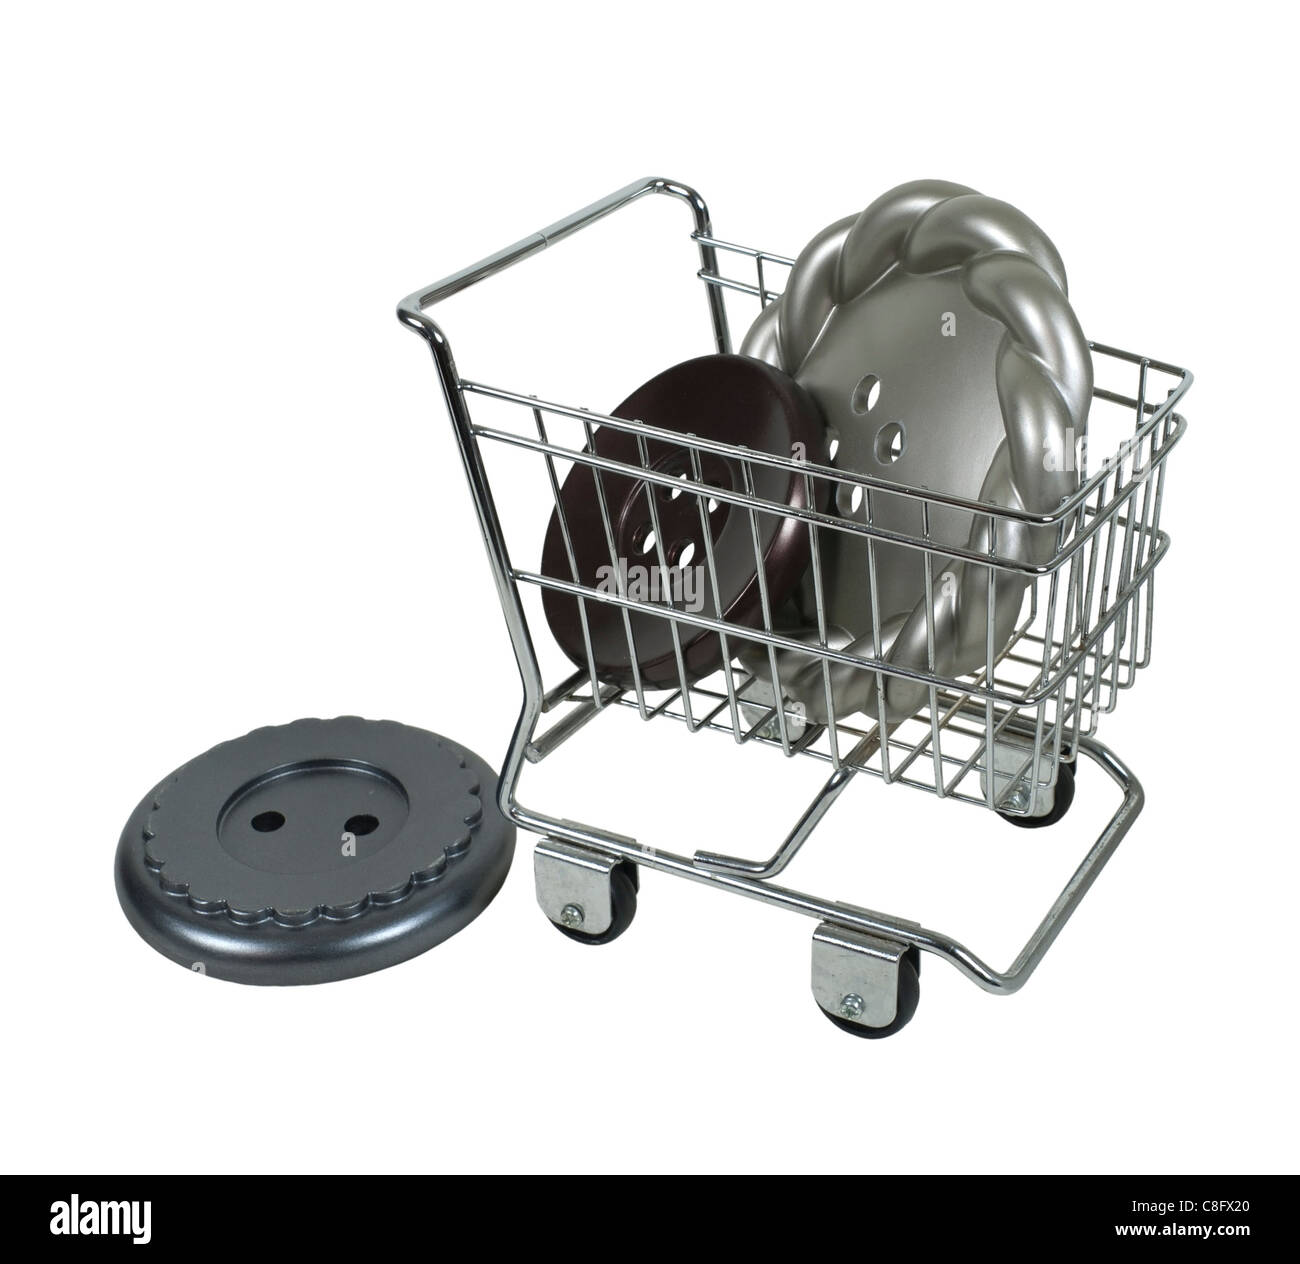 Shopping for fasteners shown by a variety of buttons used for fastening clothing in a shopping cart - path included - Stock Image